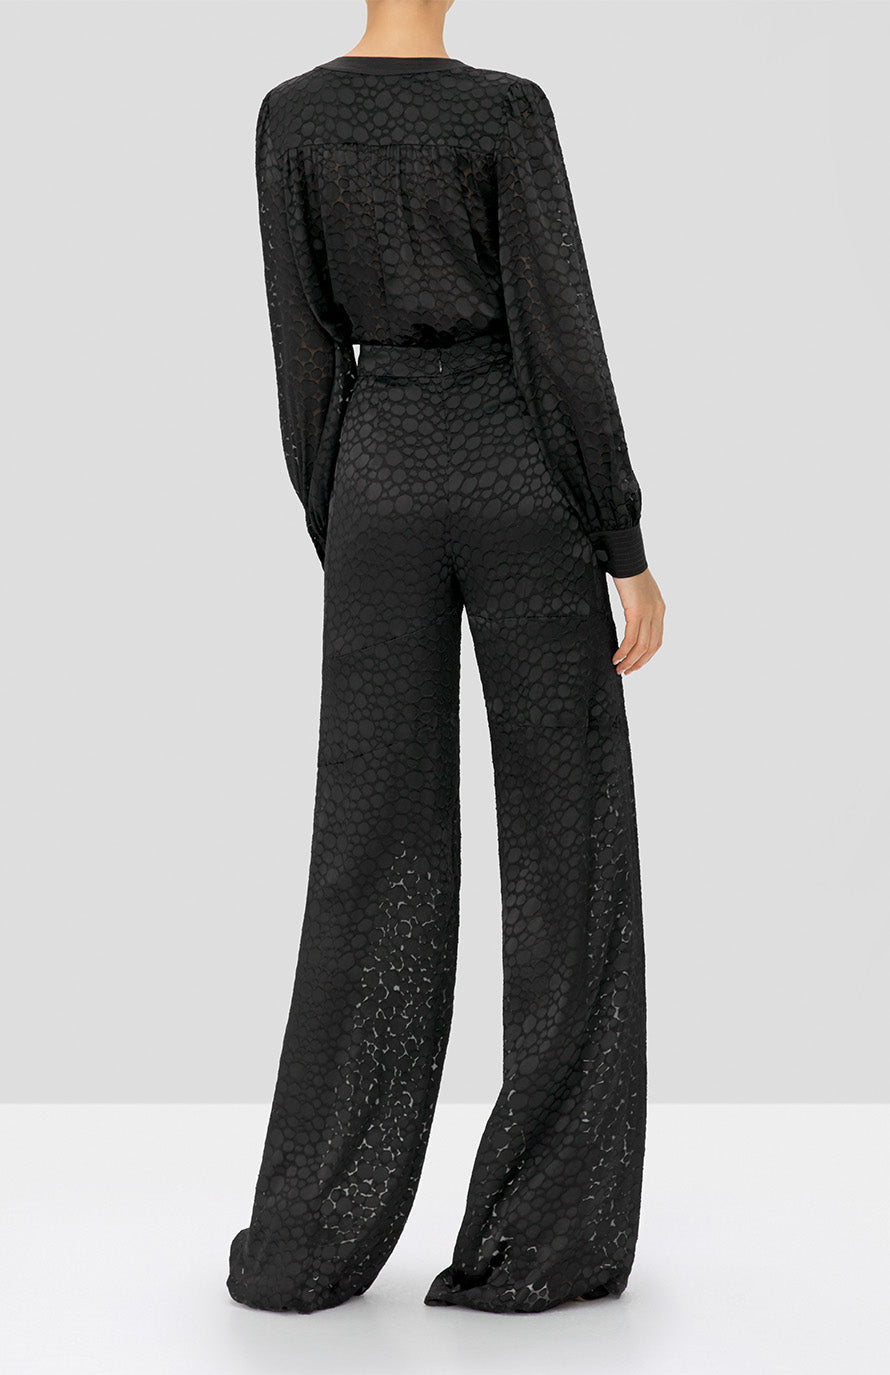 Alexis Rhida Top and Galini Pant in Black Geometric from the Holiday 2019 Ready To Wear Collection - Rear View